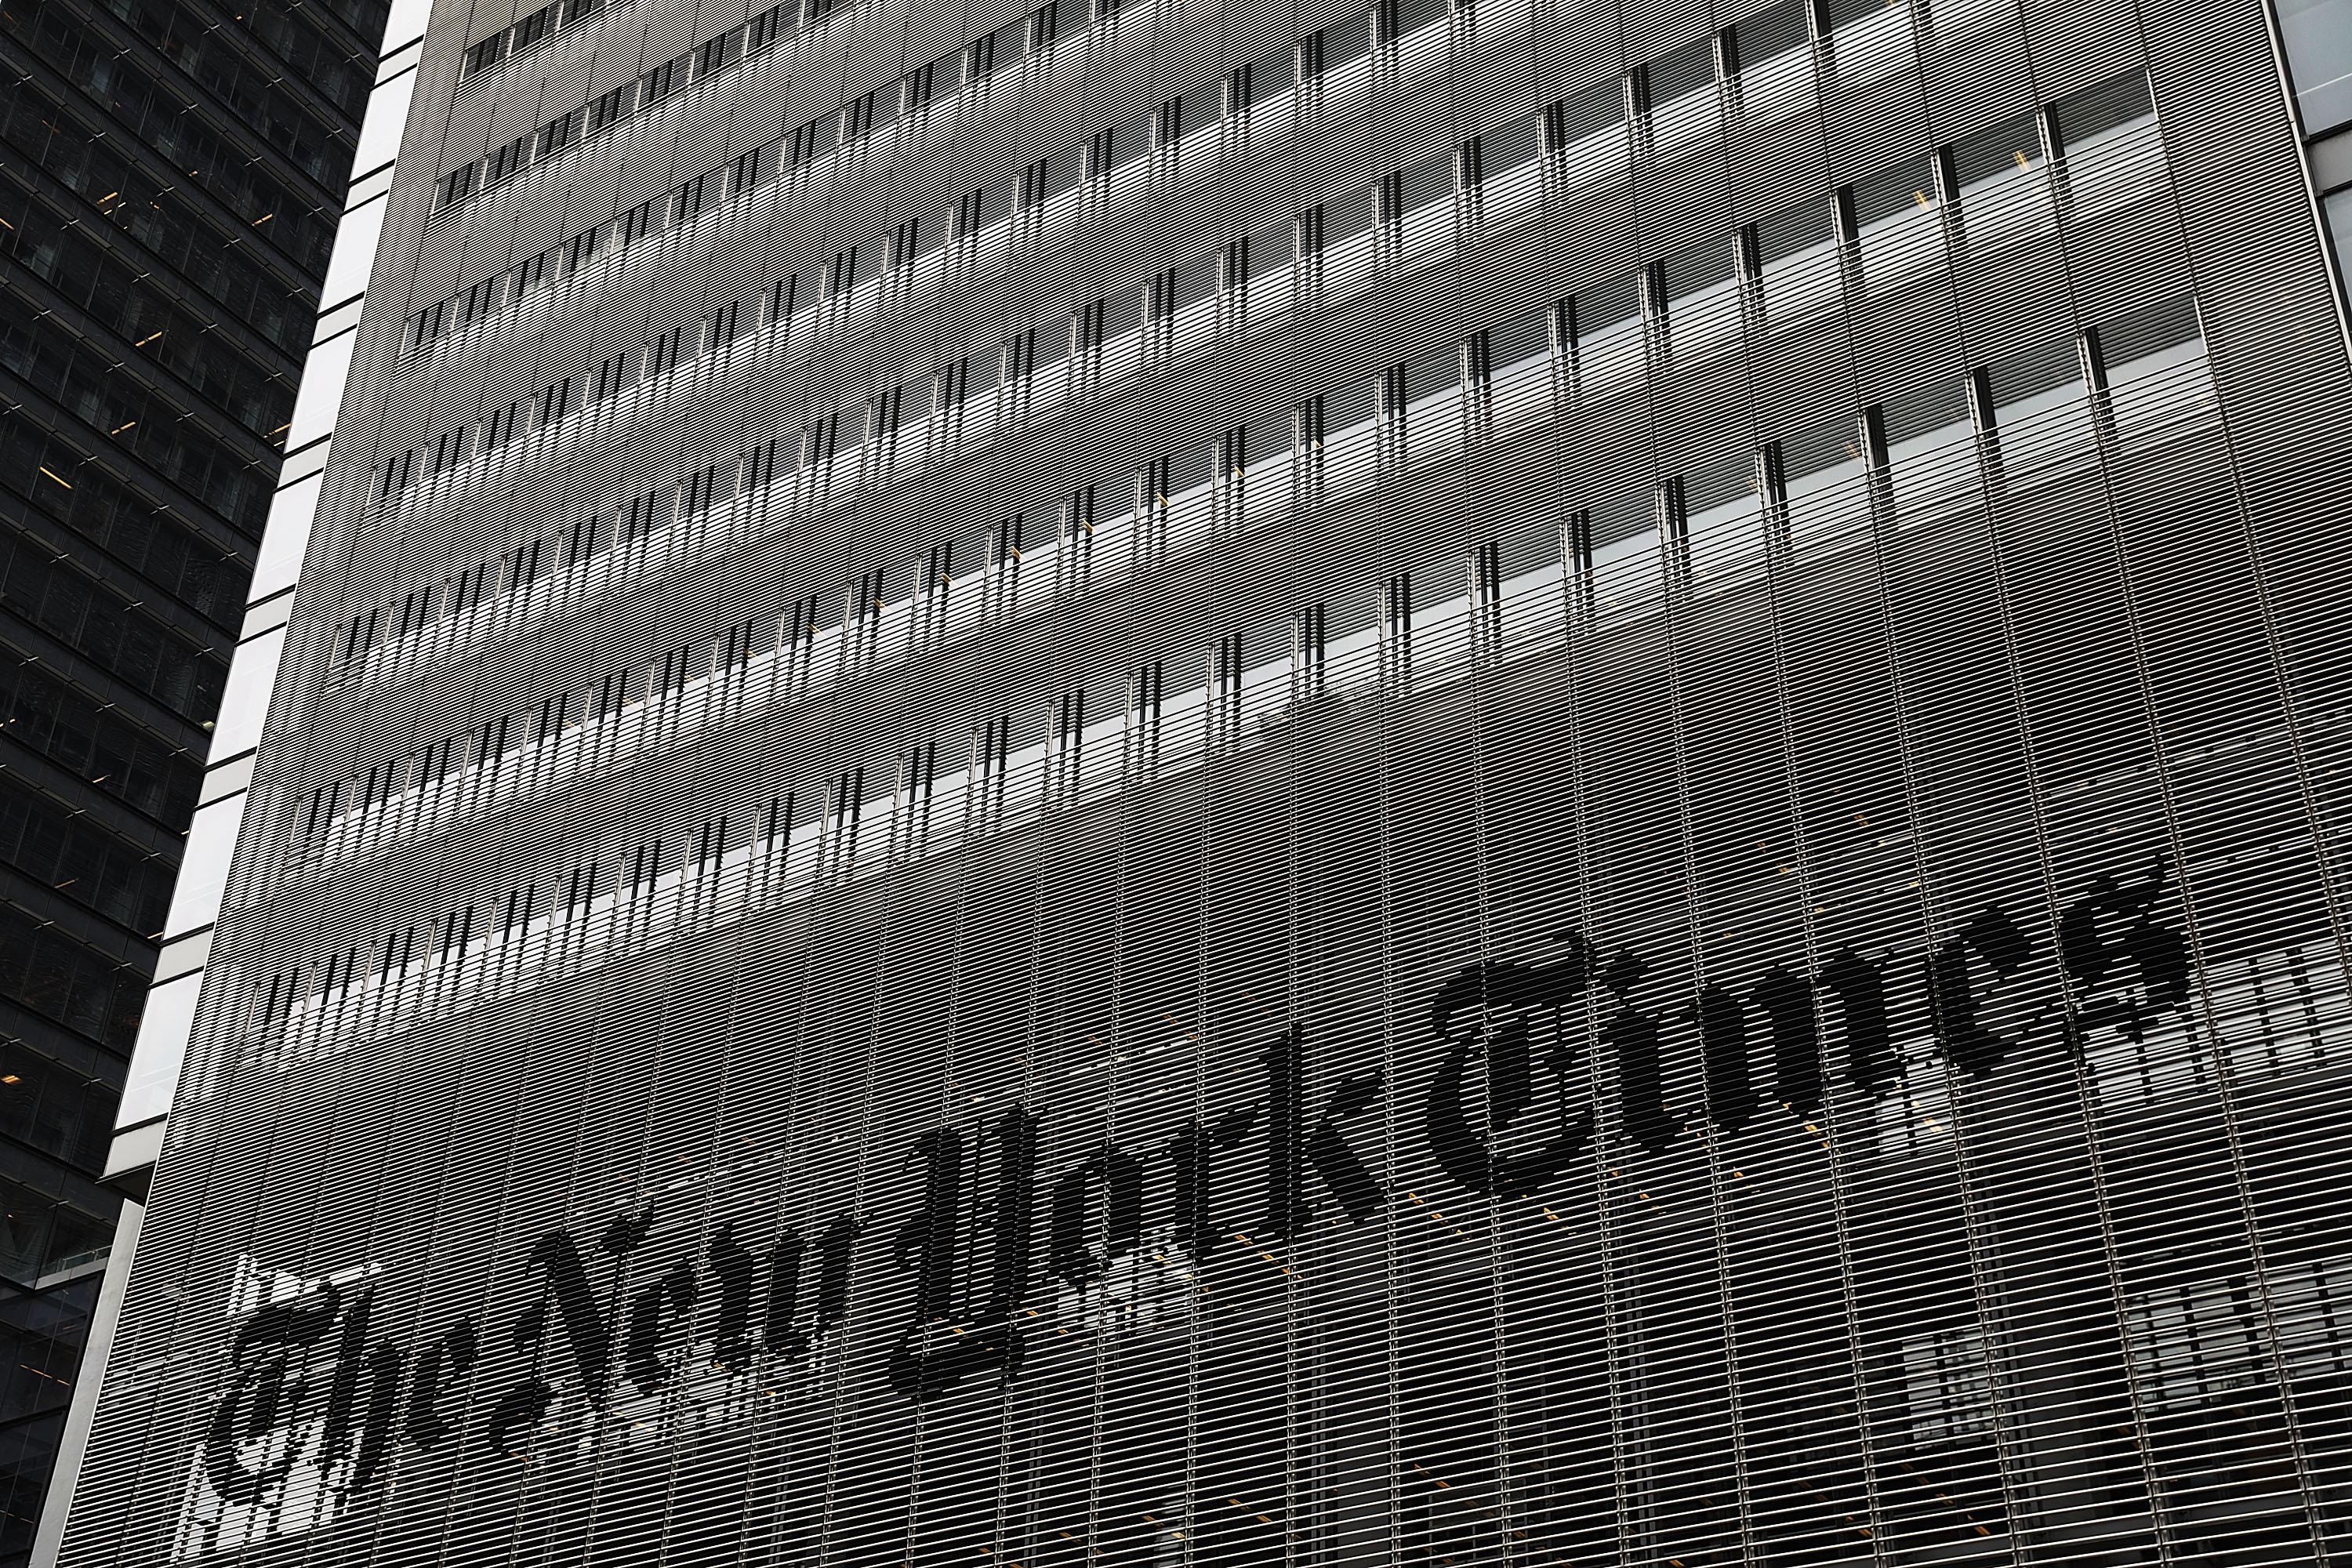 NY Times hires, fires journalist after controversial tweets resurface